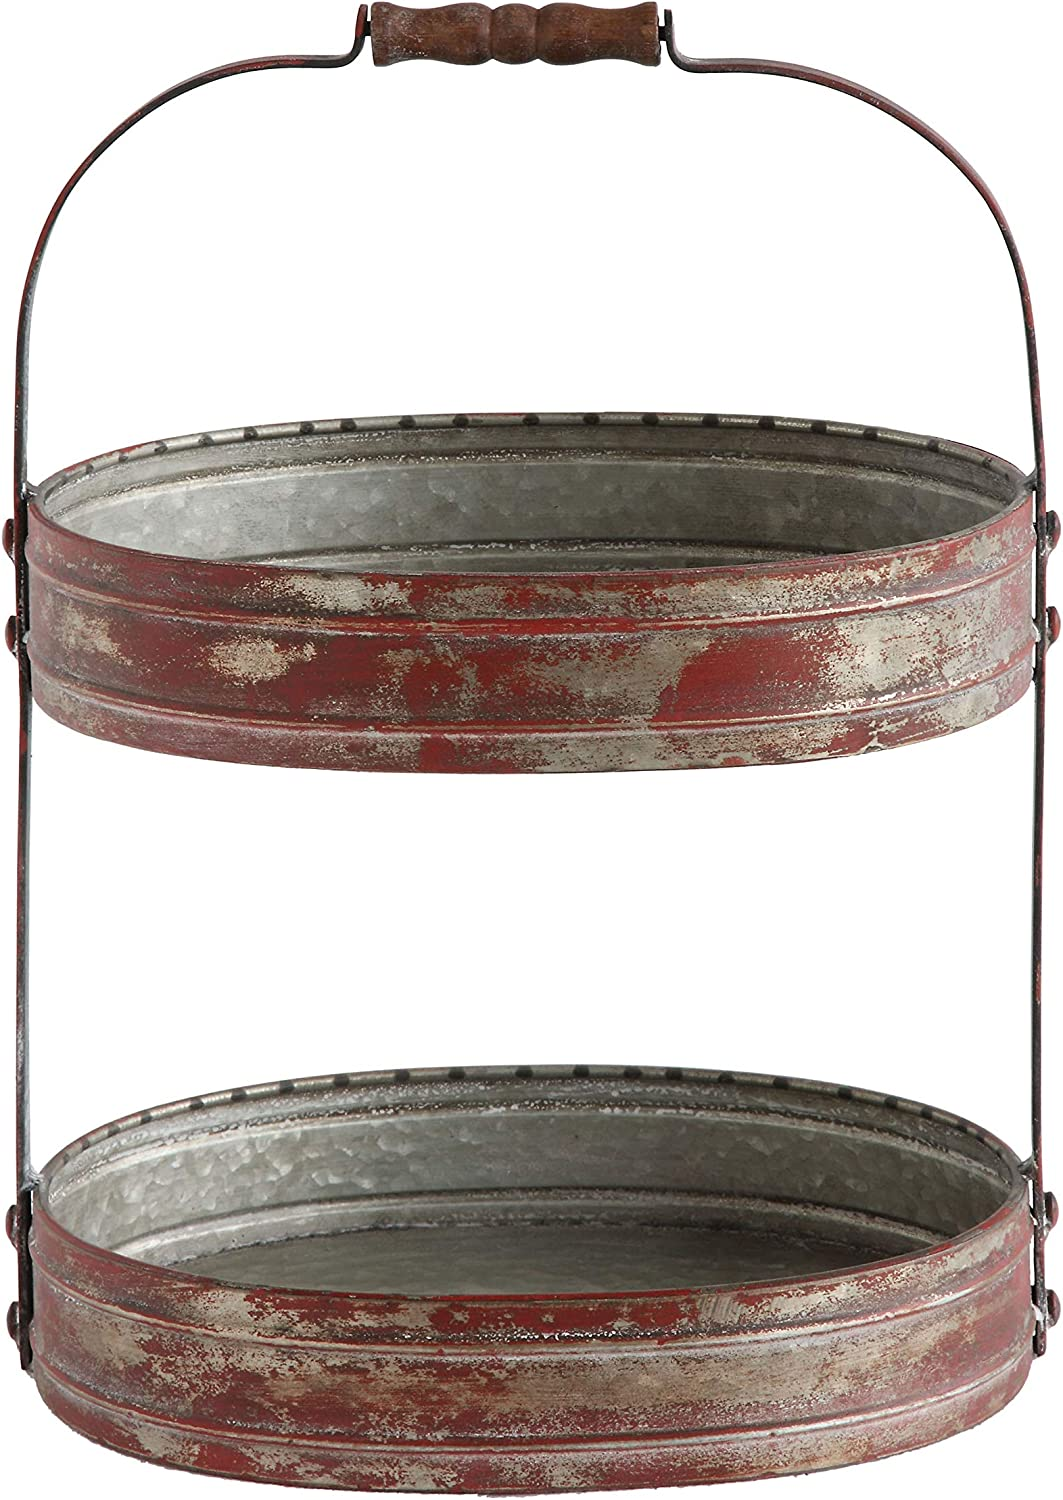 Creative Co-Op Red Metal Oval 2 Tier Tray with Handle: Home & Kitchen